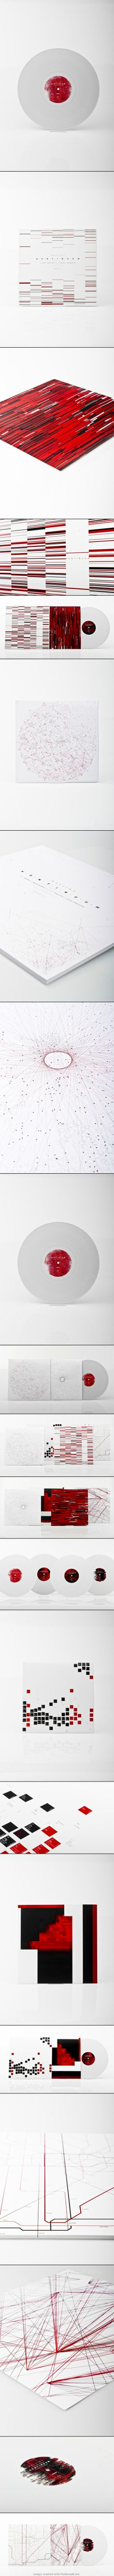 Continuum Records | Michael Gegenfurtner. This is stellar record album packaging curated by Packaging Diva PD